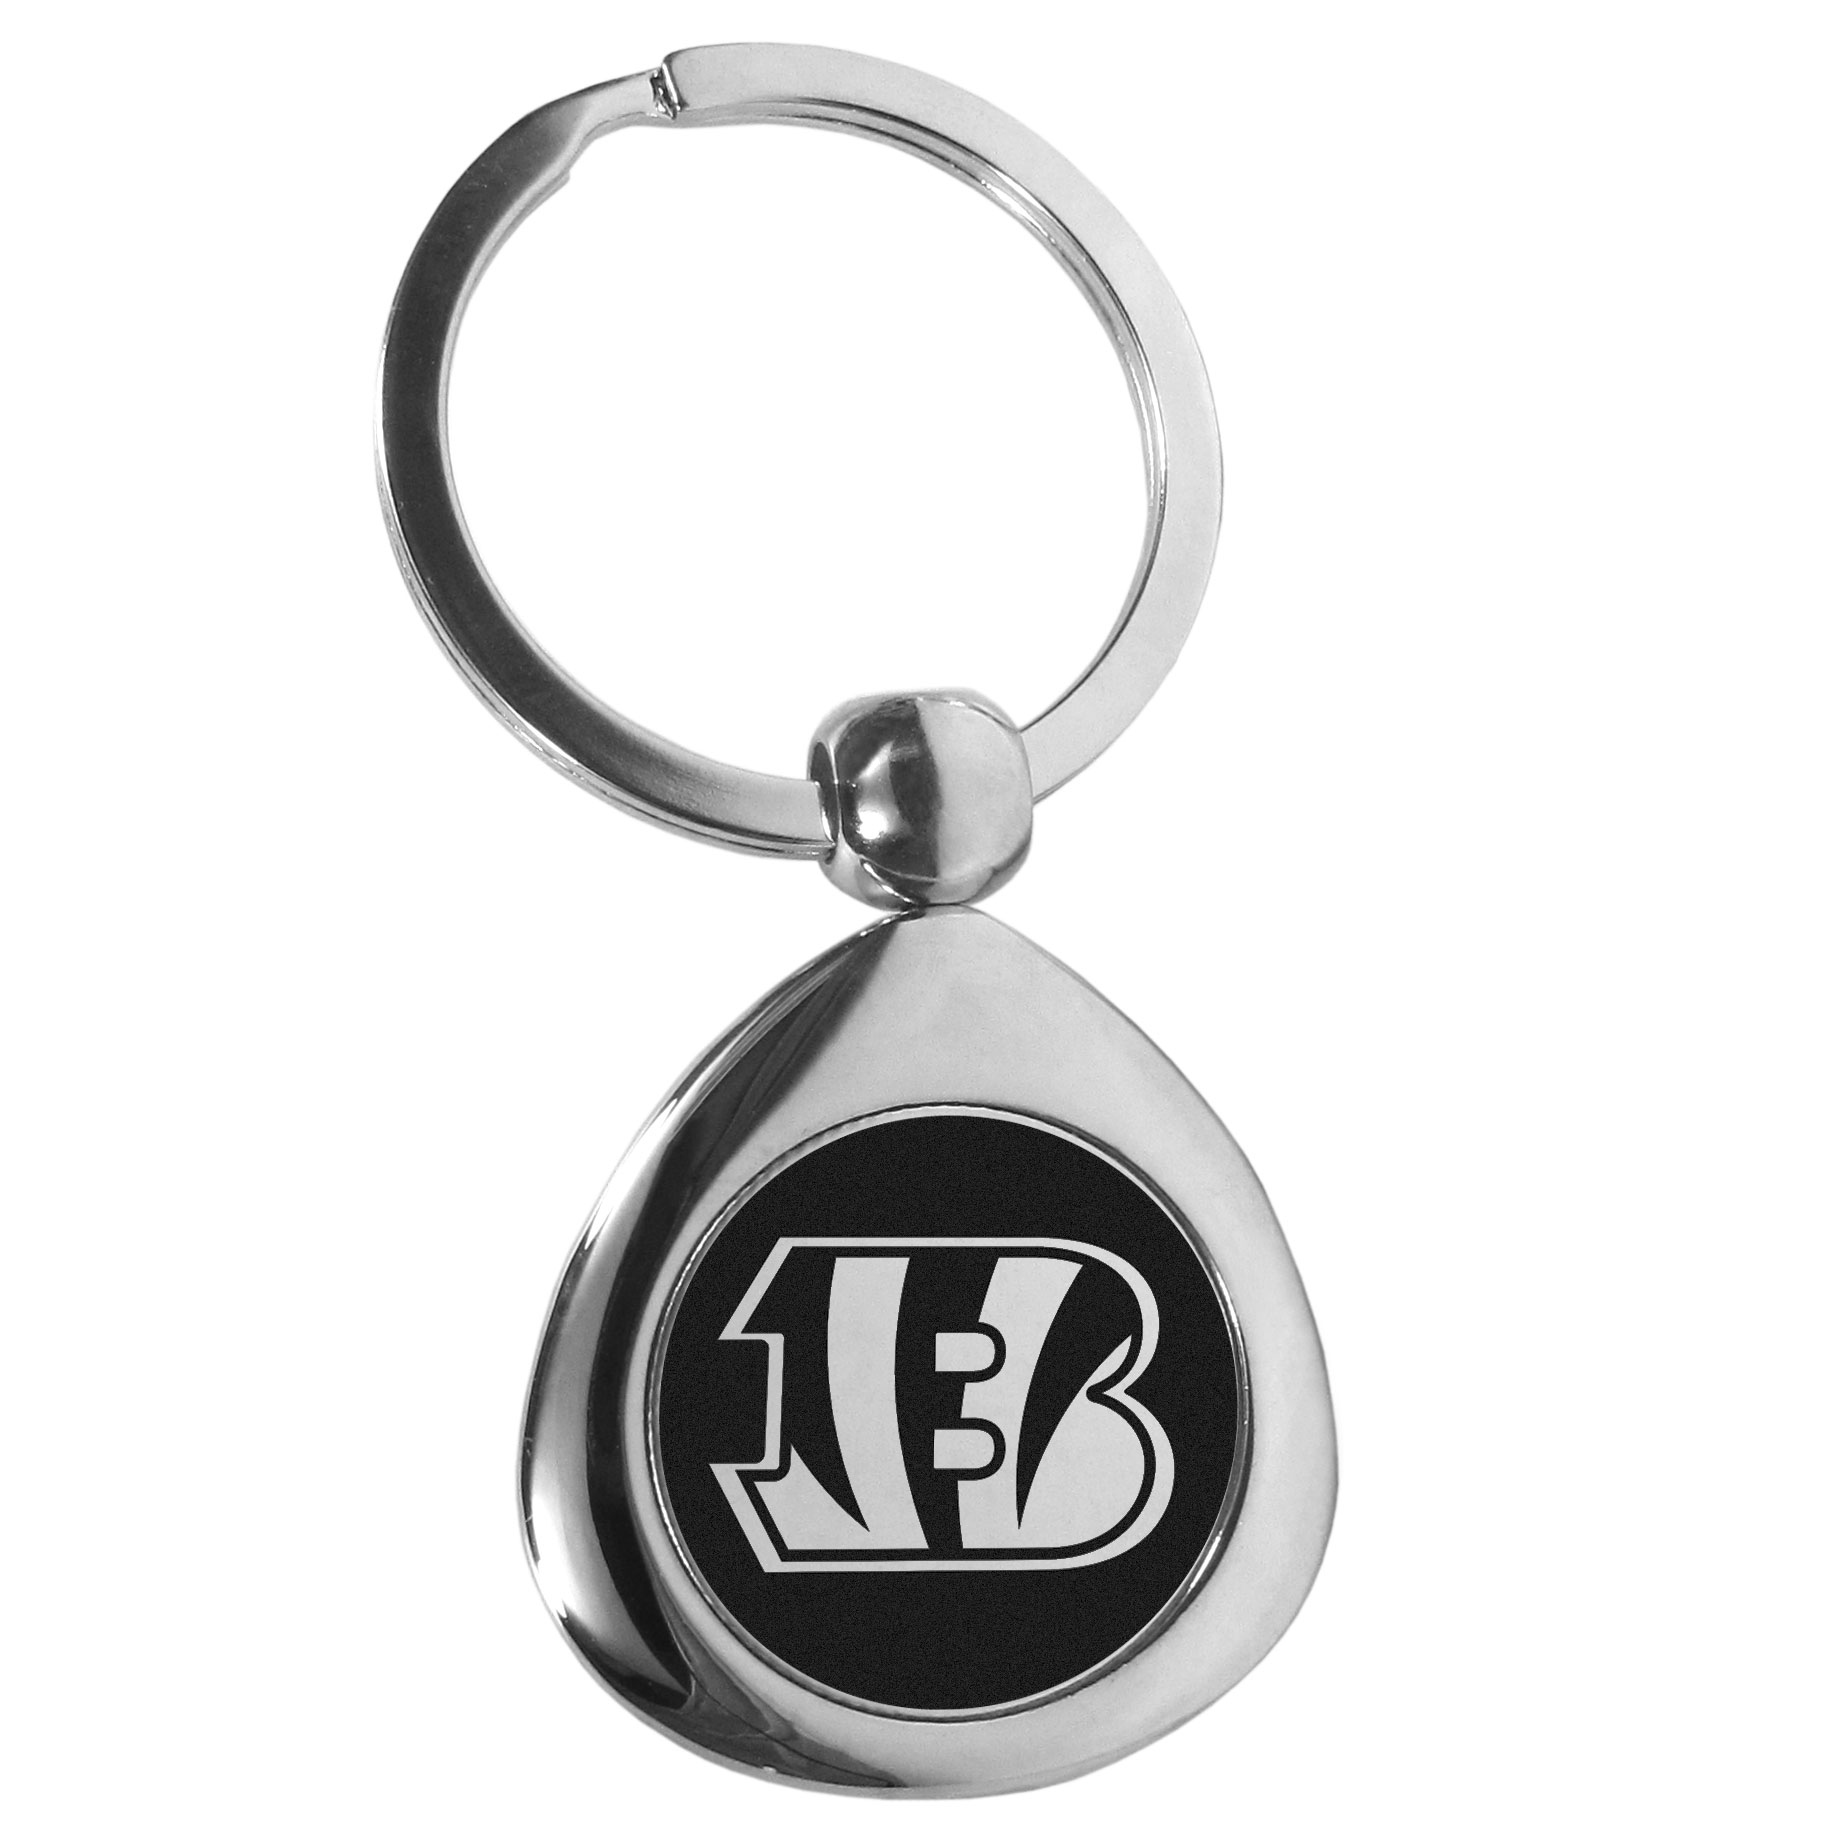 Cincinnati Bengals Round Teardrop Key Chain - Our high polish chrome Cincinnati Bengals round teardrop key chain has a classy look with a sporty twist. The high-quality key fob features the team logo in the team's primary color. The key ring is a flat split ring that is easier to load you home and auto keys onto.